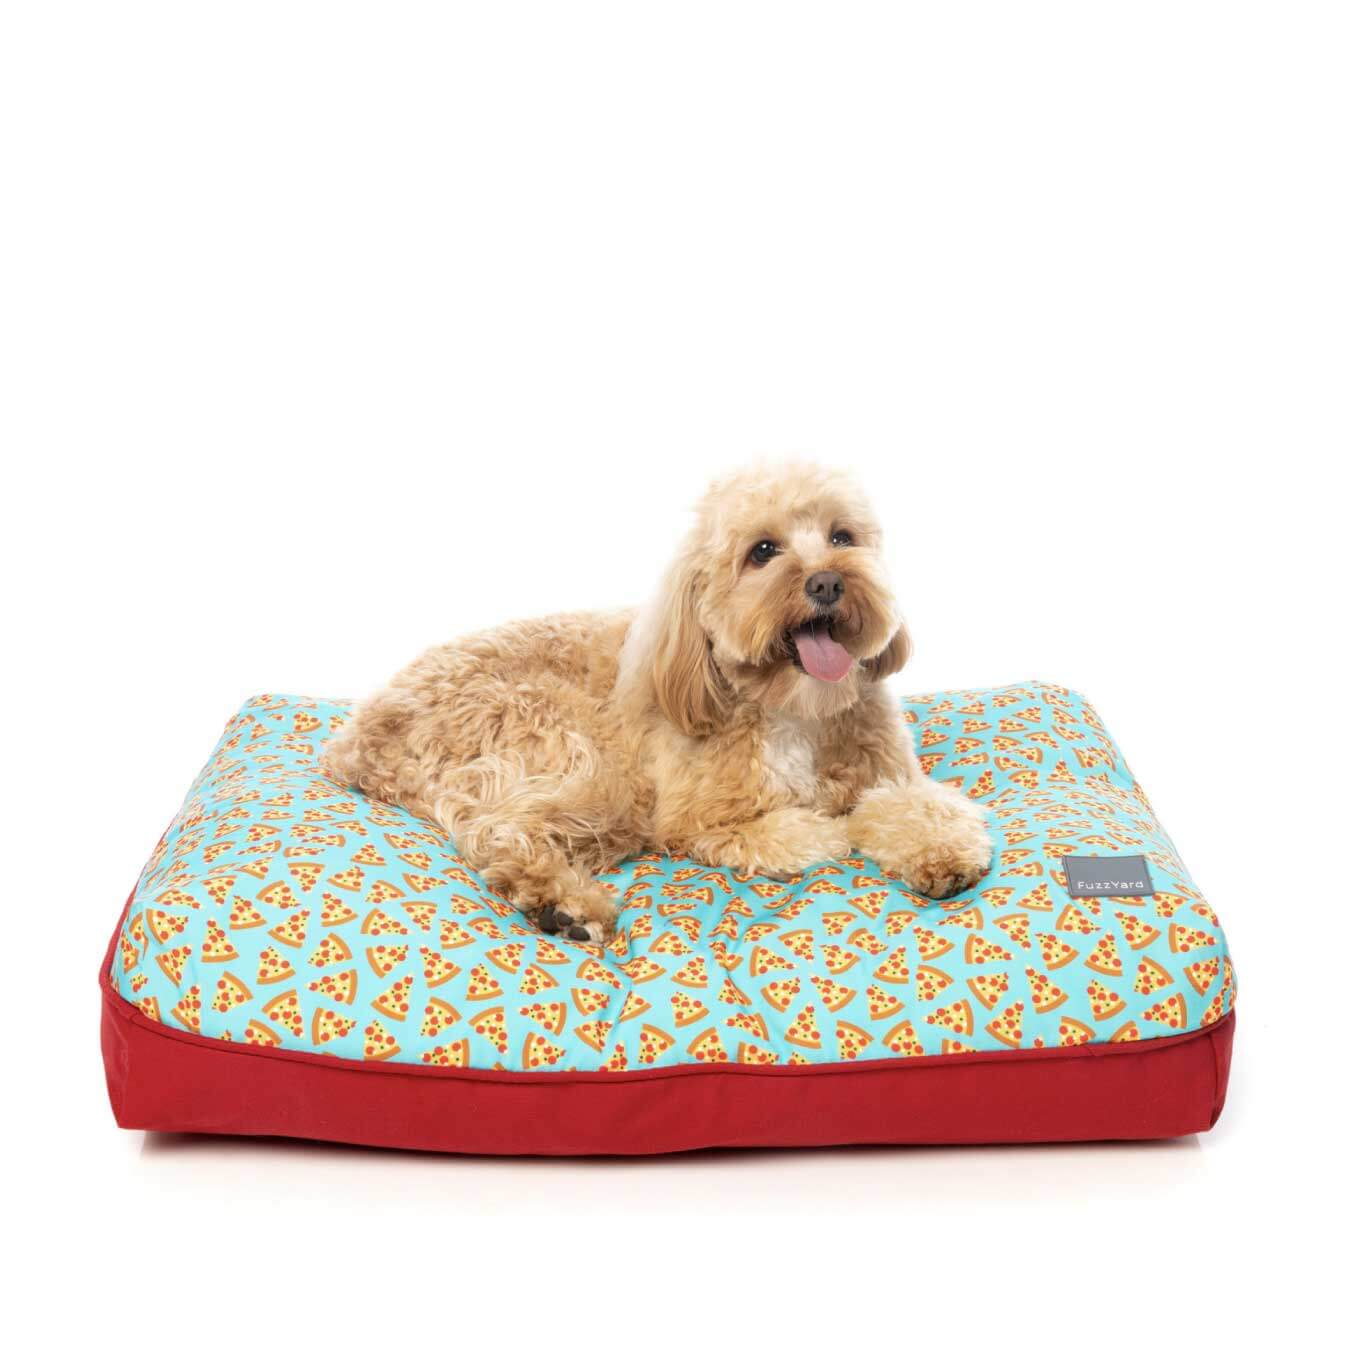 FuzzYard Pizza Lyf Big Dreamer Pillow Bed - Beds, Cats, Dogs, FuzzYard - Vanillapup - Online Pet Shop